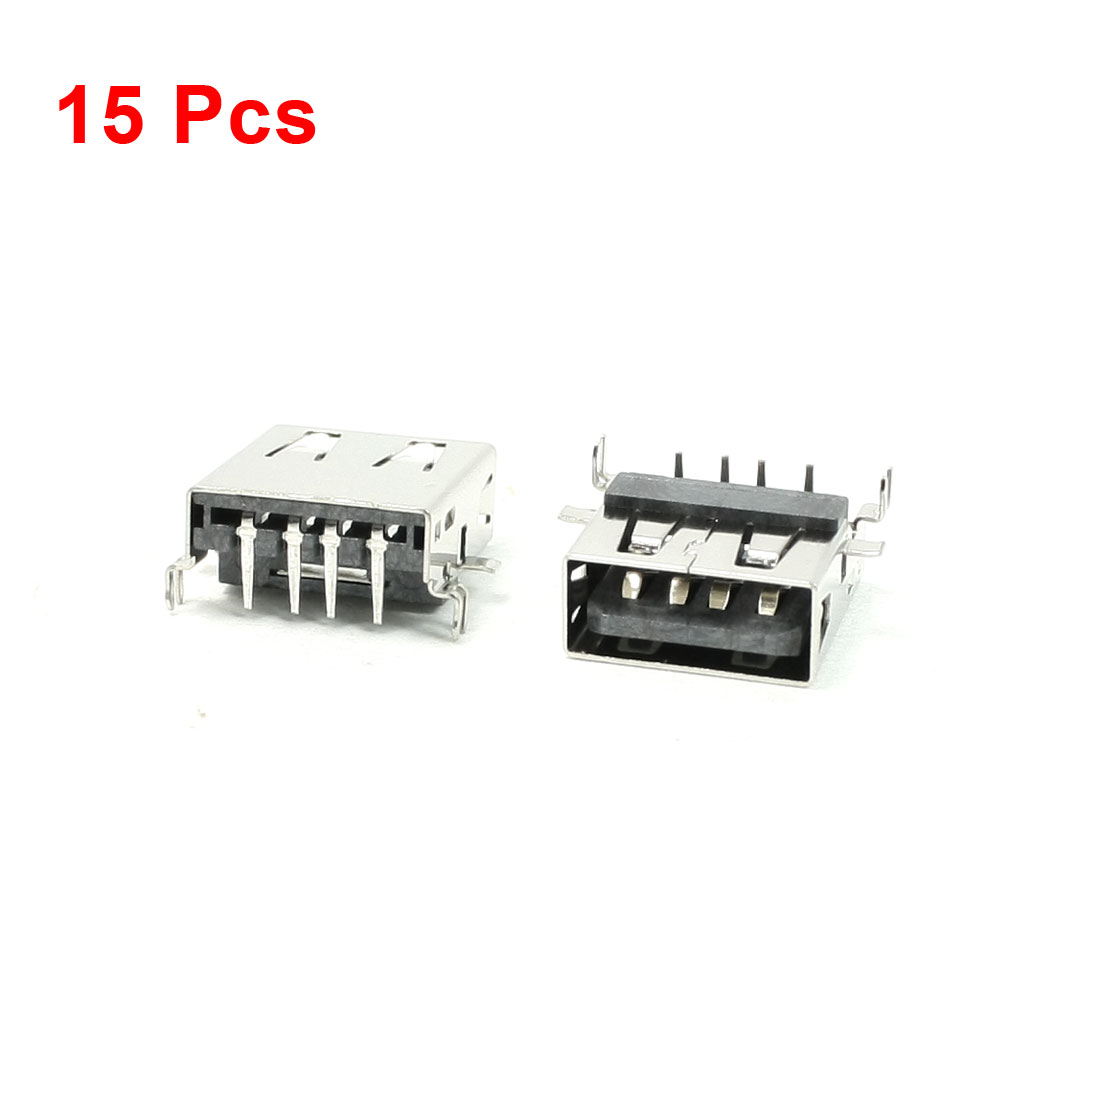 15Pcs Type A USB2.0 Female PCB Mount Port Jacks for PC Computer